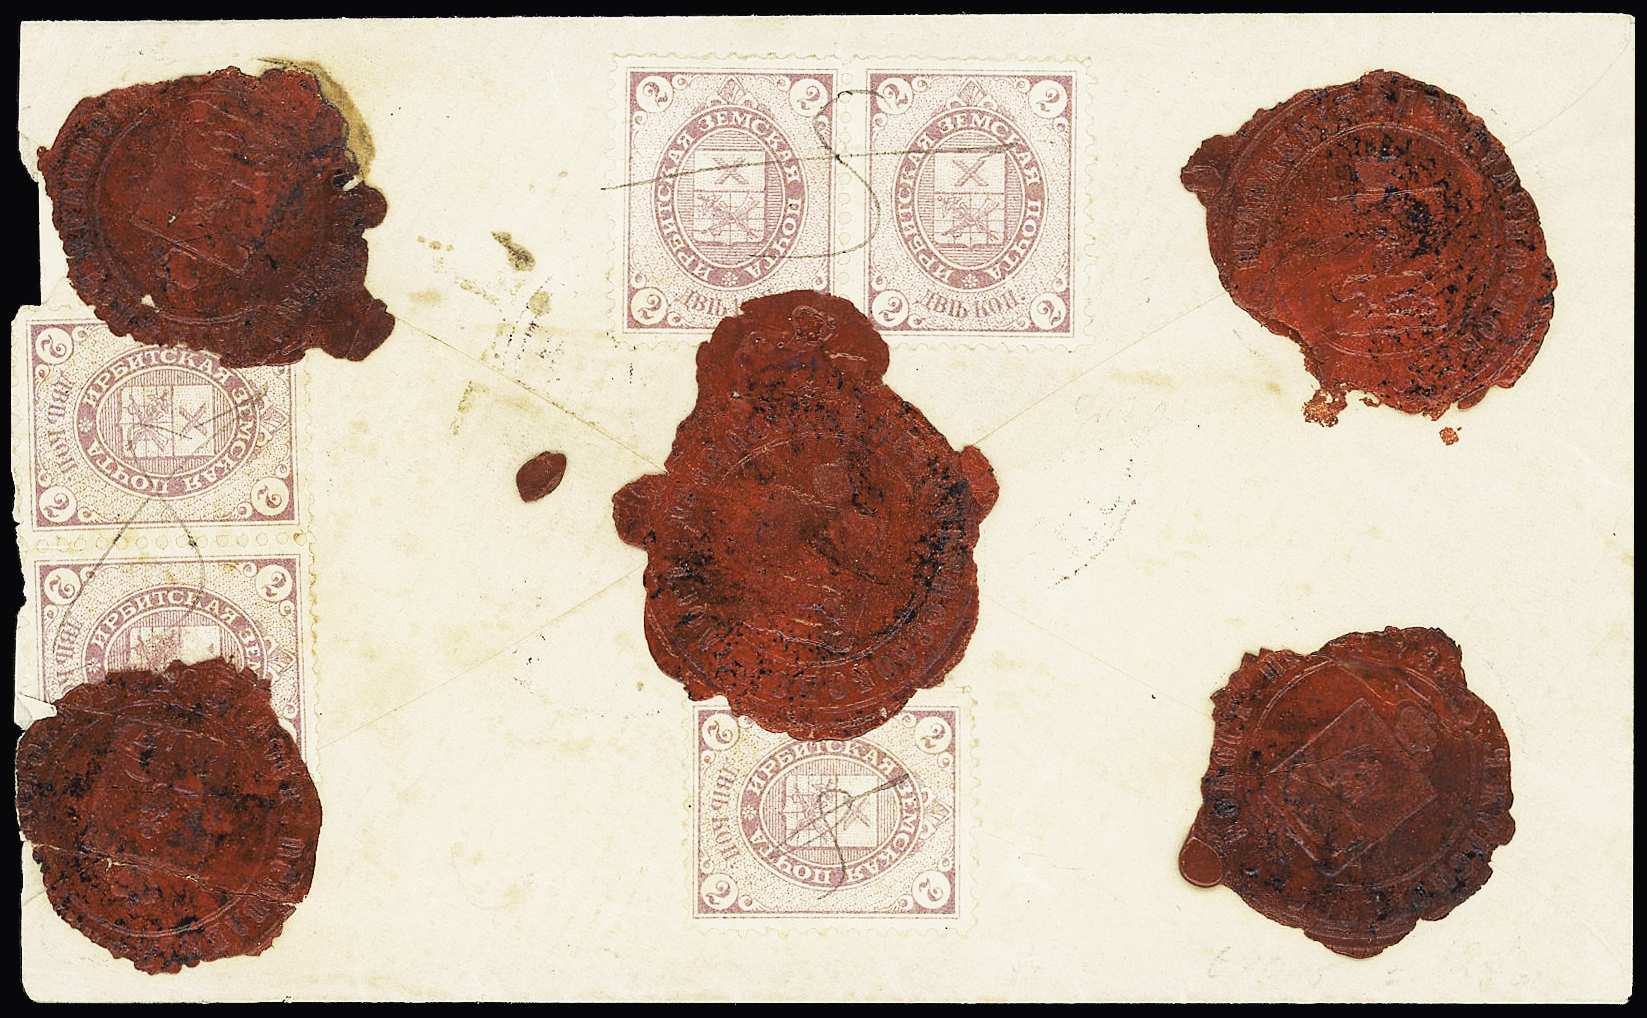 Lot 461 - Eastern Europe » RUSSIA - ZEMSTVOS » Irbit (Perm Government)  -  Le Timbre Classique SA SALE ON OFFERS N ° 37 PARIS